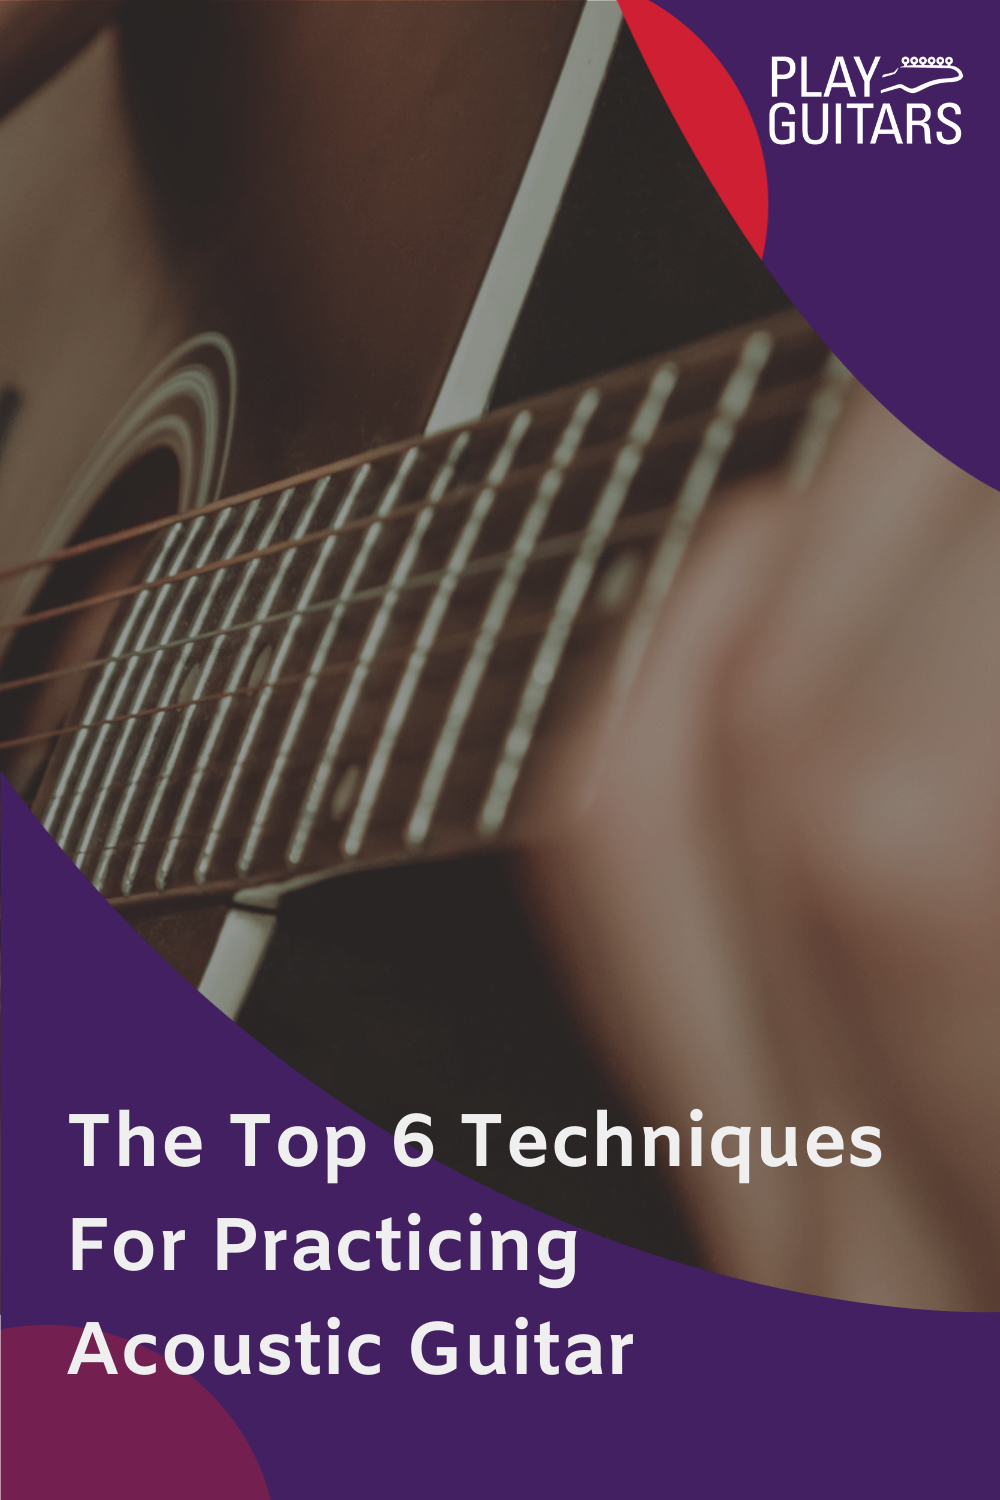 Top 6 Techniques For Practicing Acoustic Guitar Guitar Teaching Learn Guitar Chords Music Theory Guitar